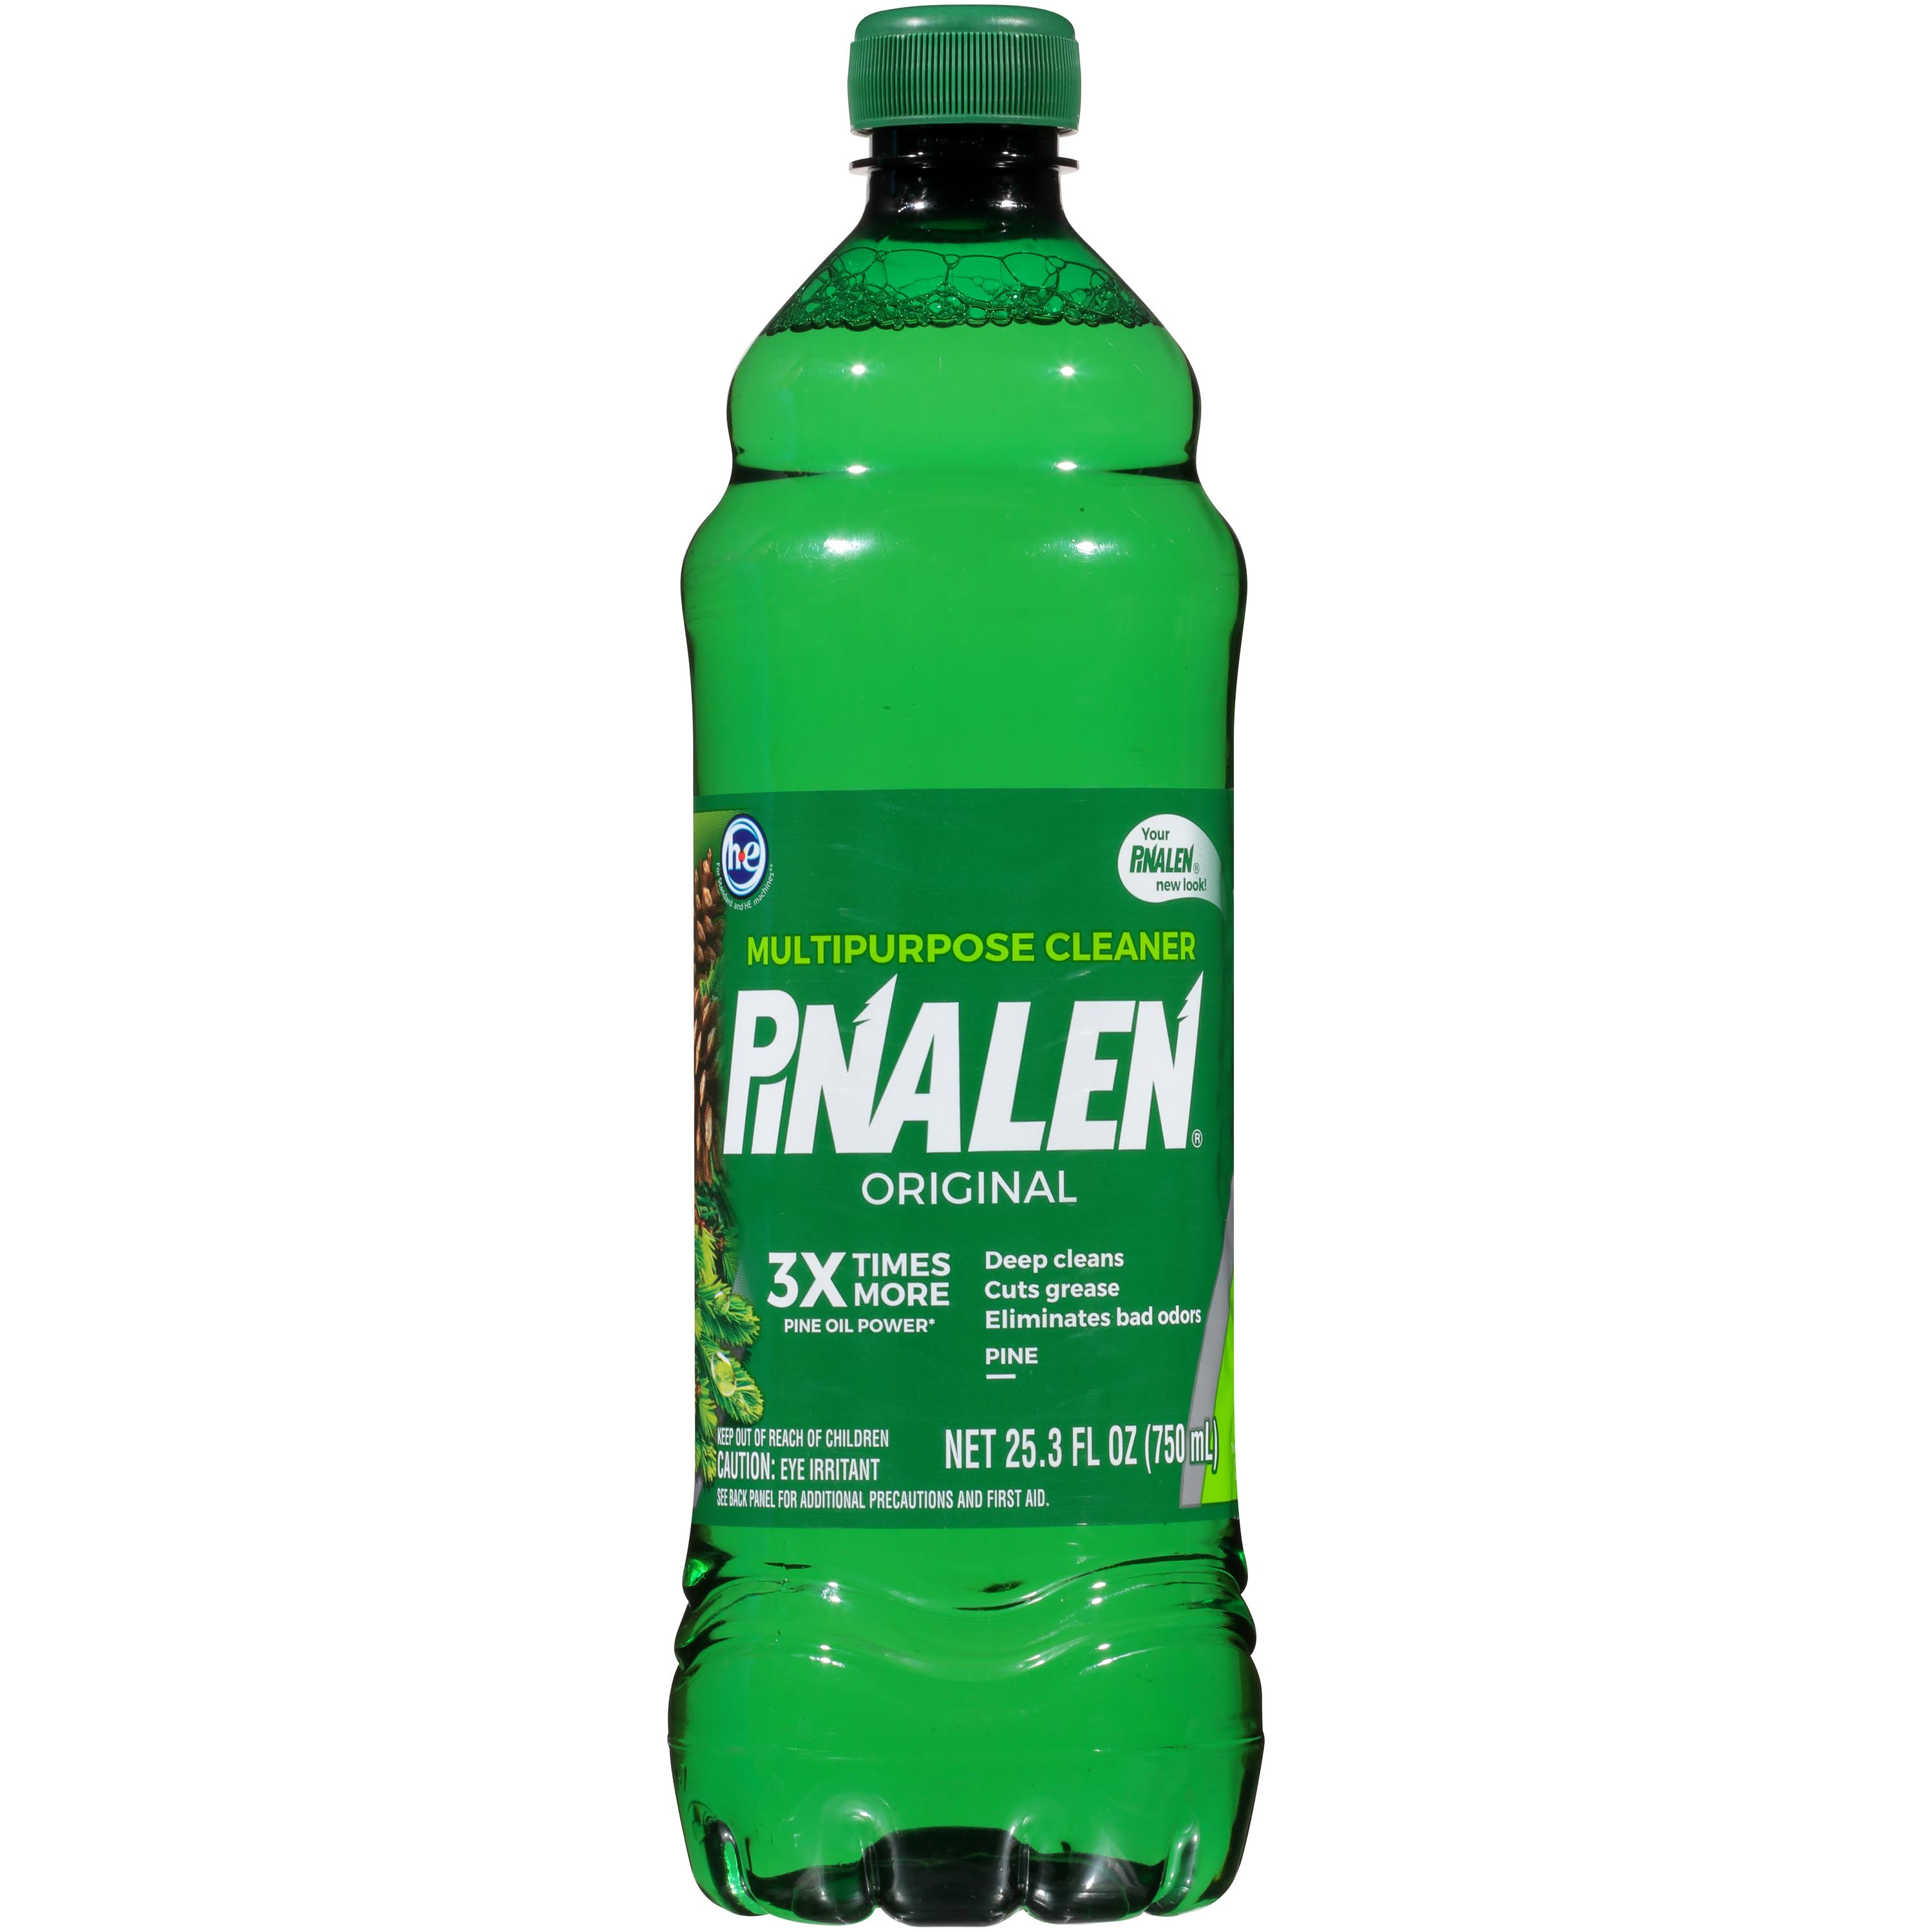 Pinalen Original Pine Multipurpose Cleaner 25.3 Fl. Oz. Bottle